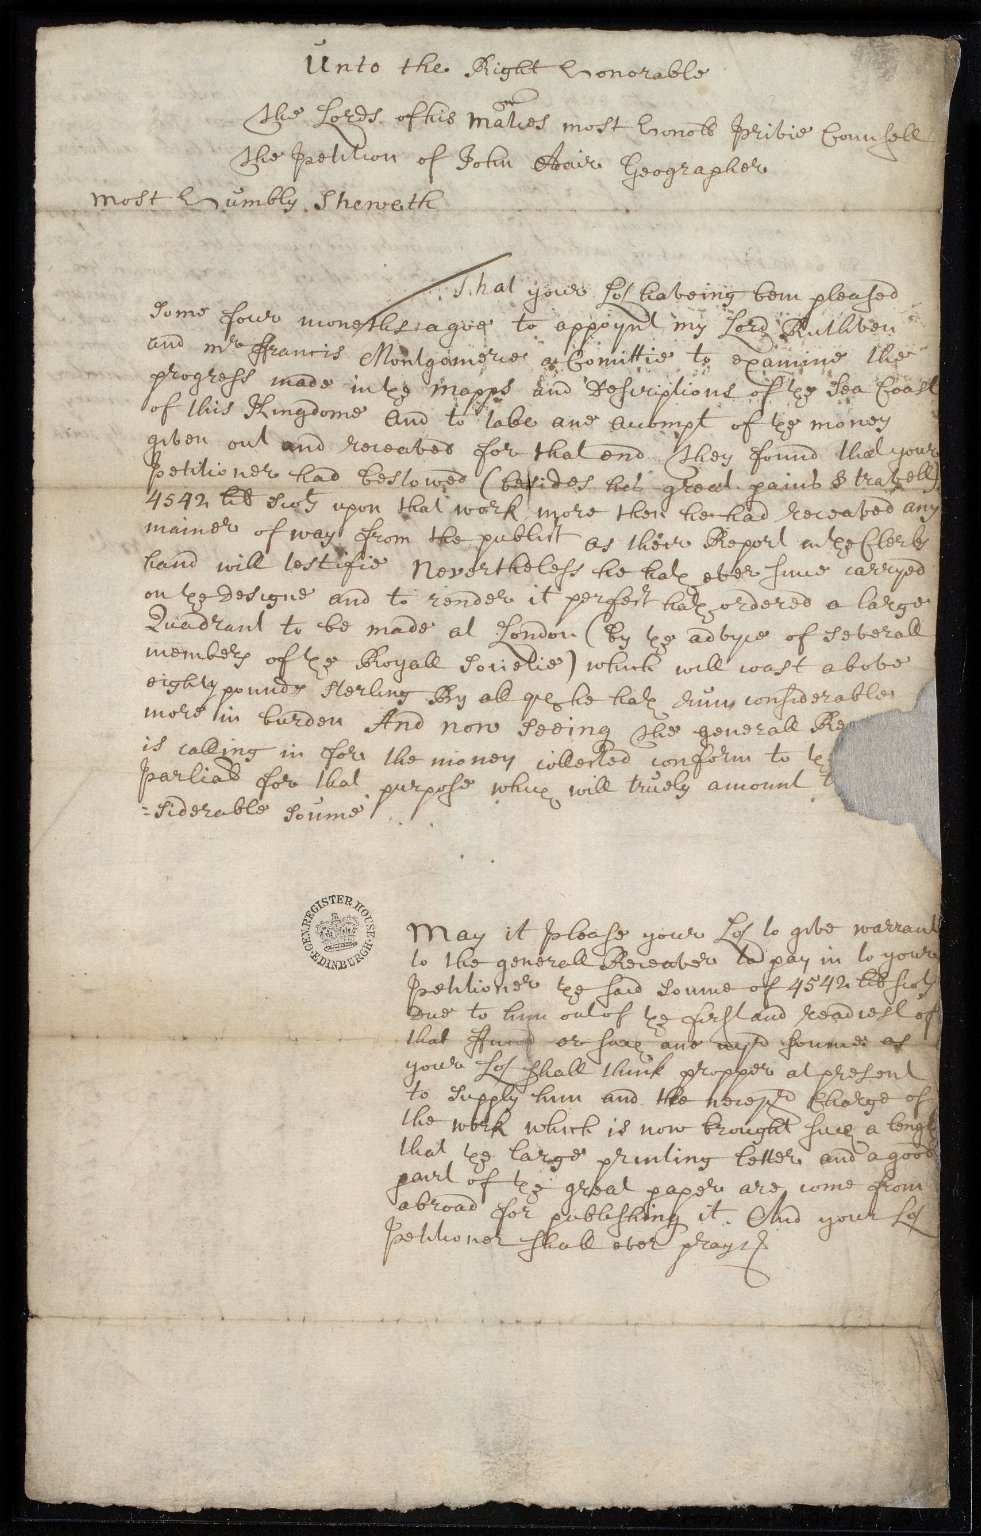 [Petition of John Adair to the Privy Council, containing reference to Adair ordering] a large quadrant to be made in London [1 of 1]